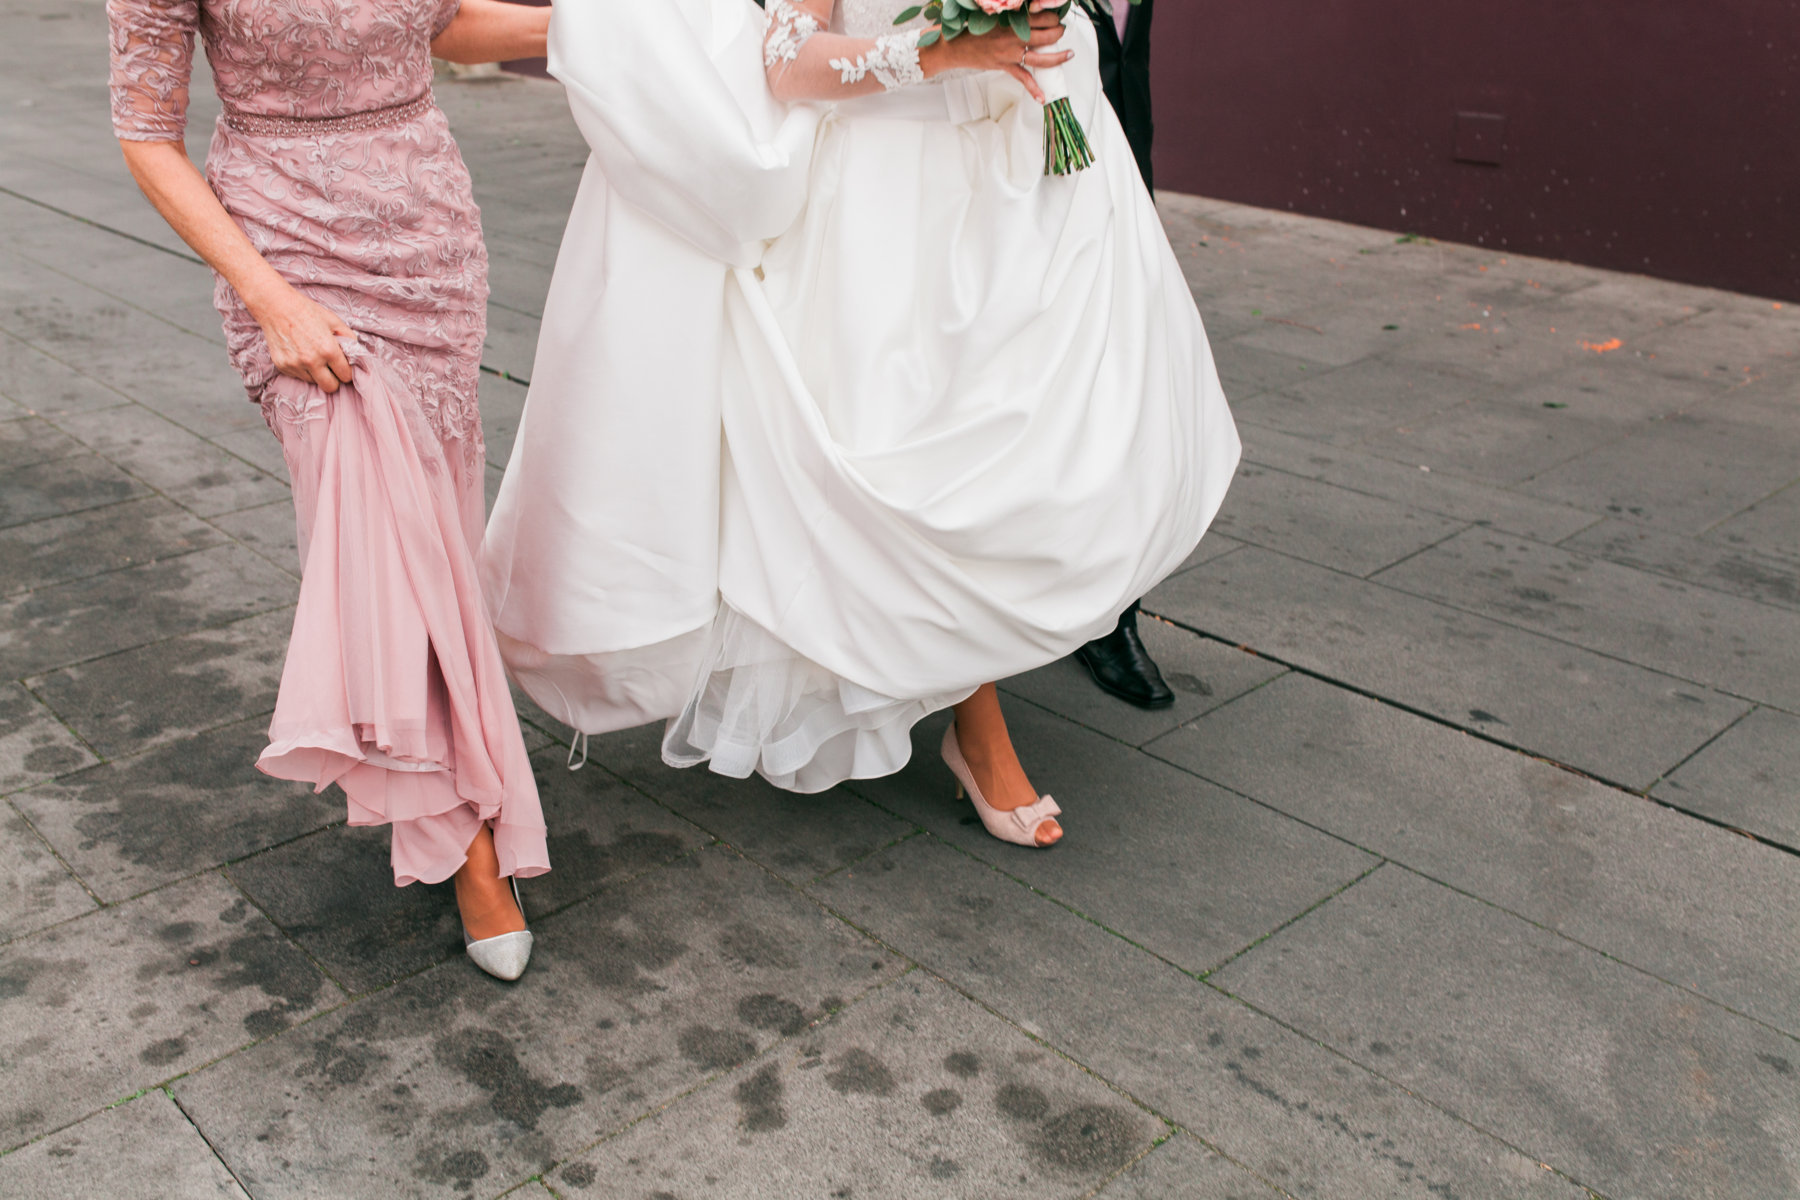 maria+rao+lousa+wedding-245 web.jpg